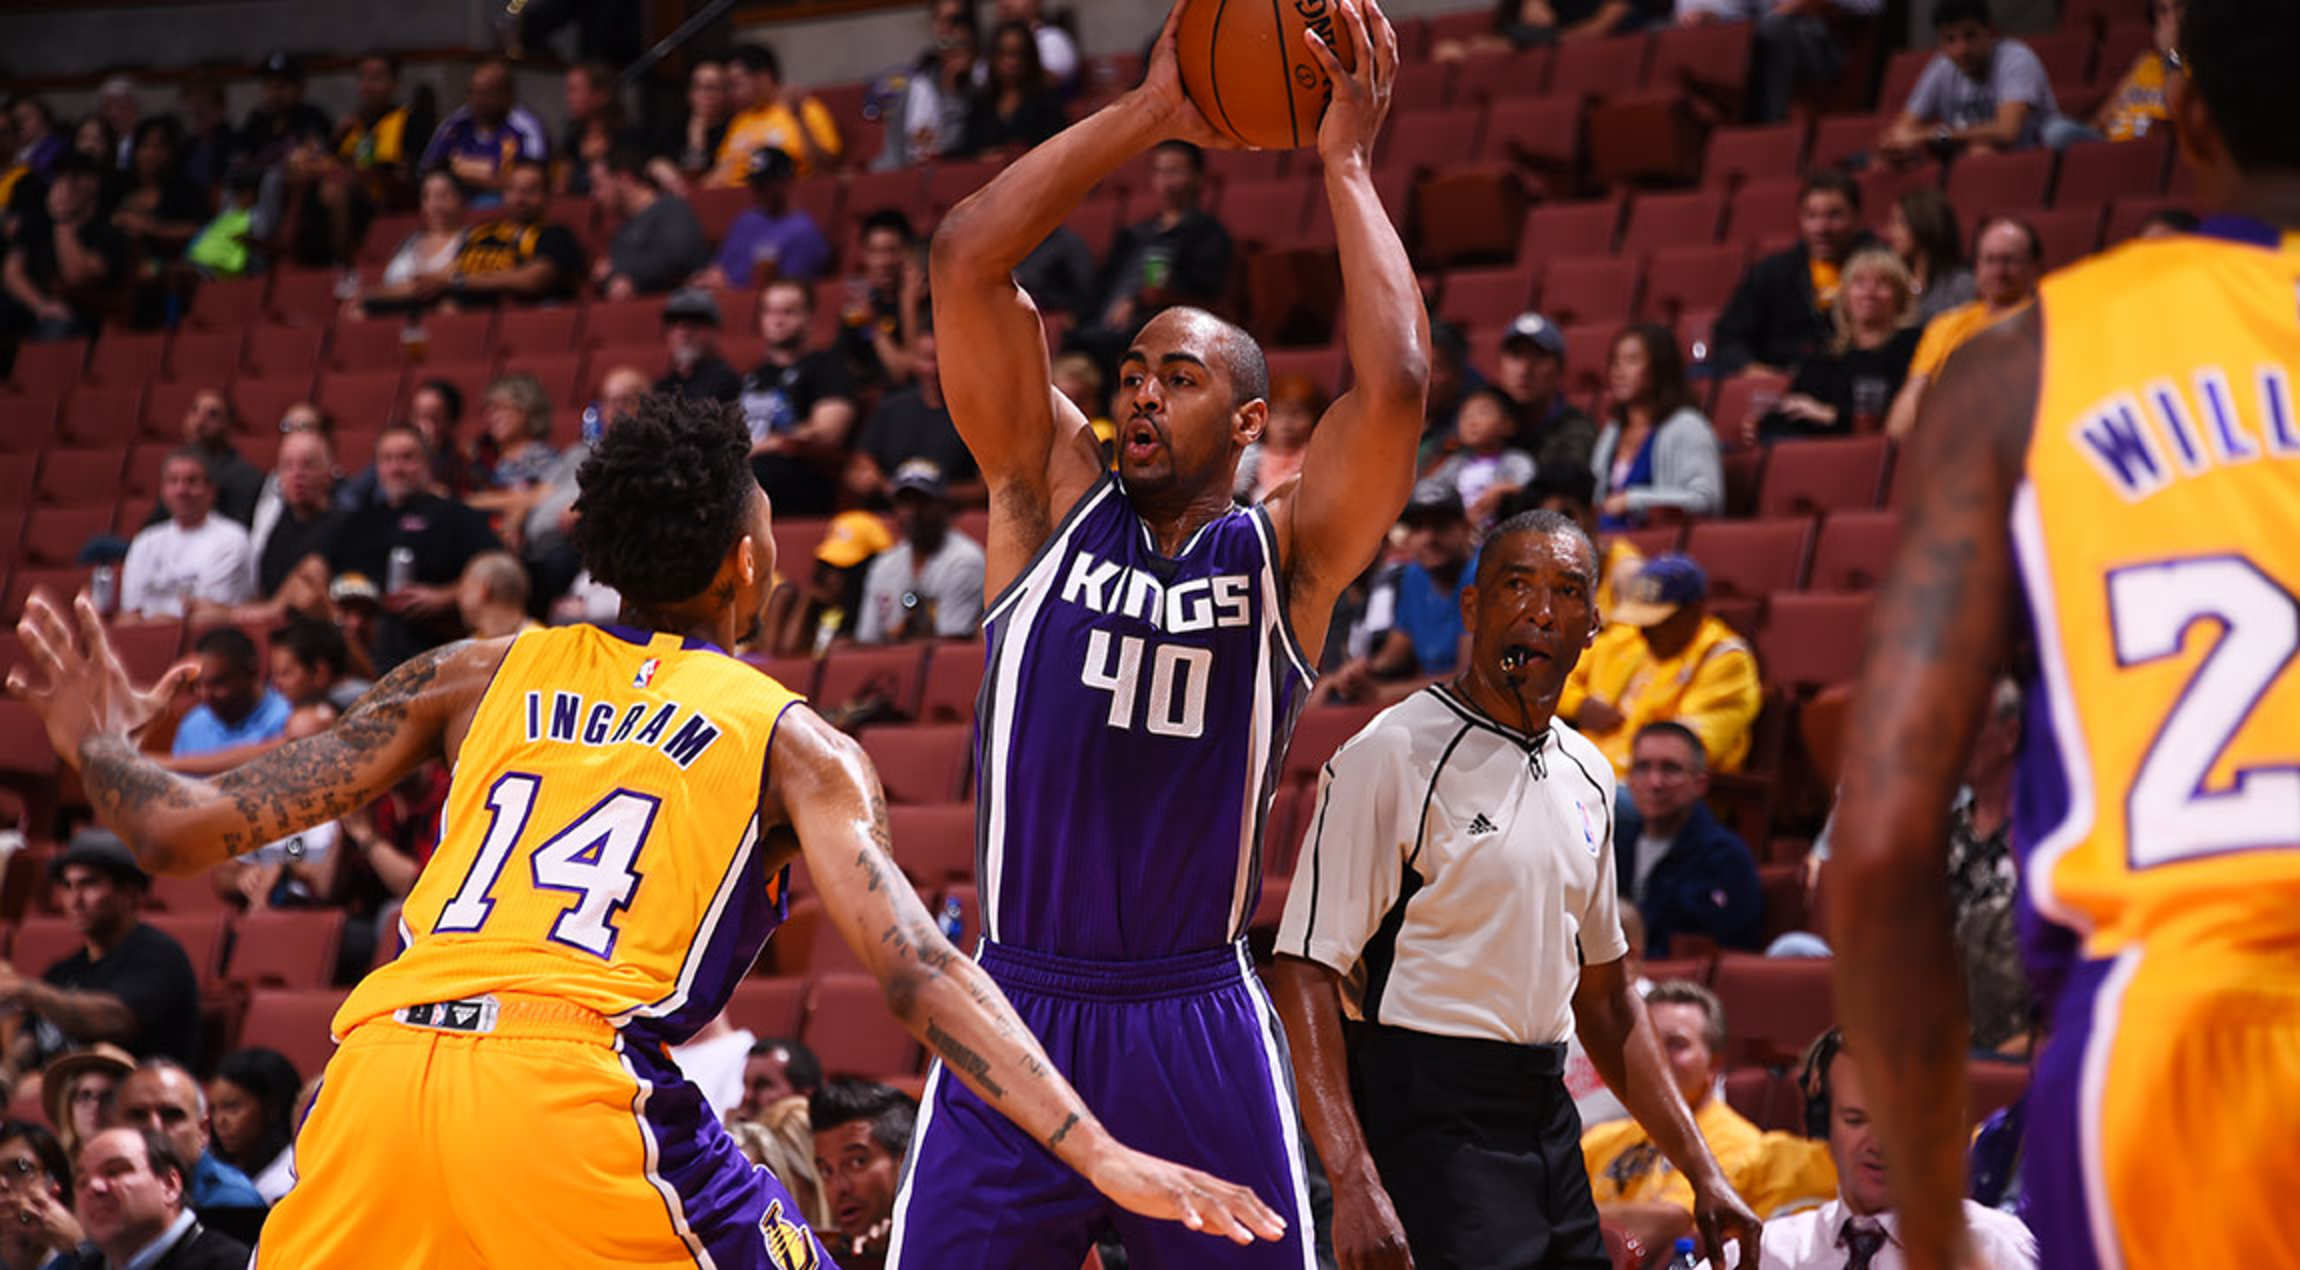 nba the lakers versus kings Tickets for basketball games: buy los angeles lakers basketball single game   you're in the loop for los angeles lakers  okc vs lakers @ staple center.